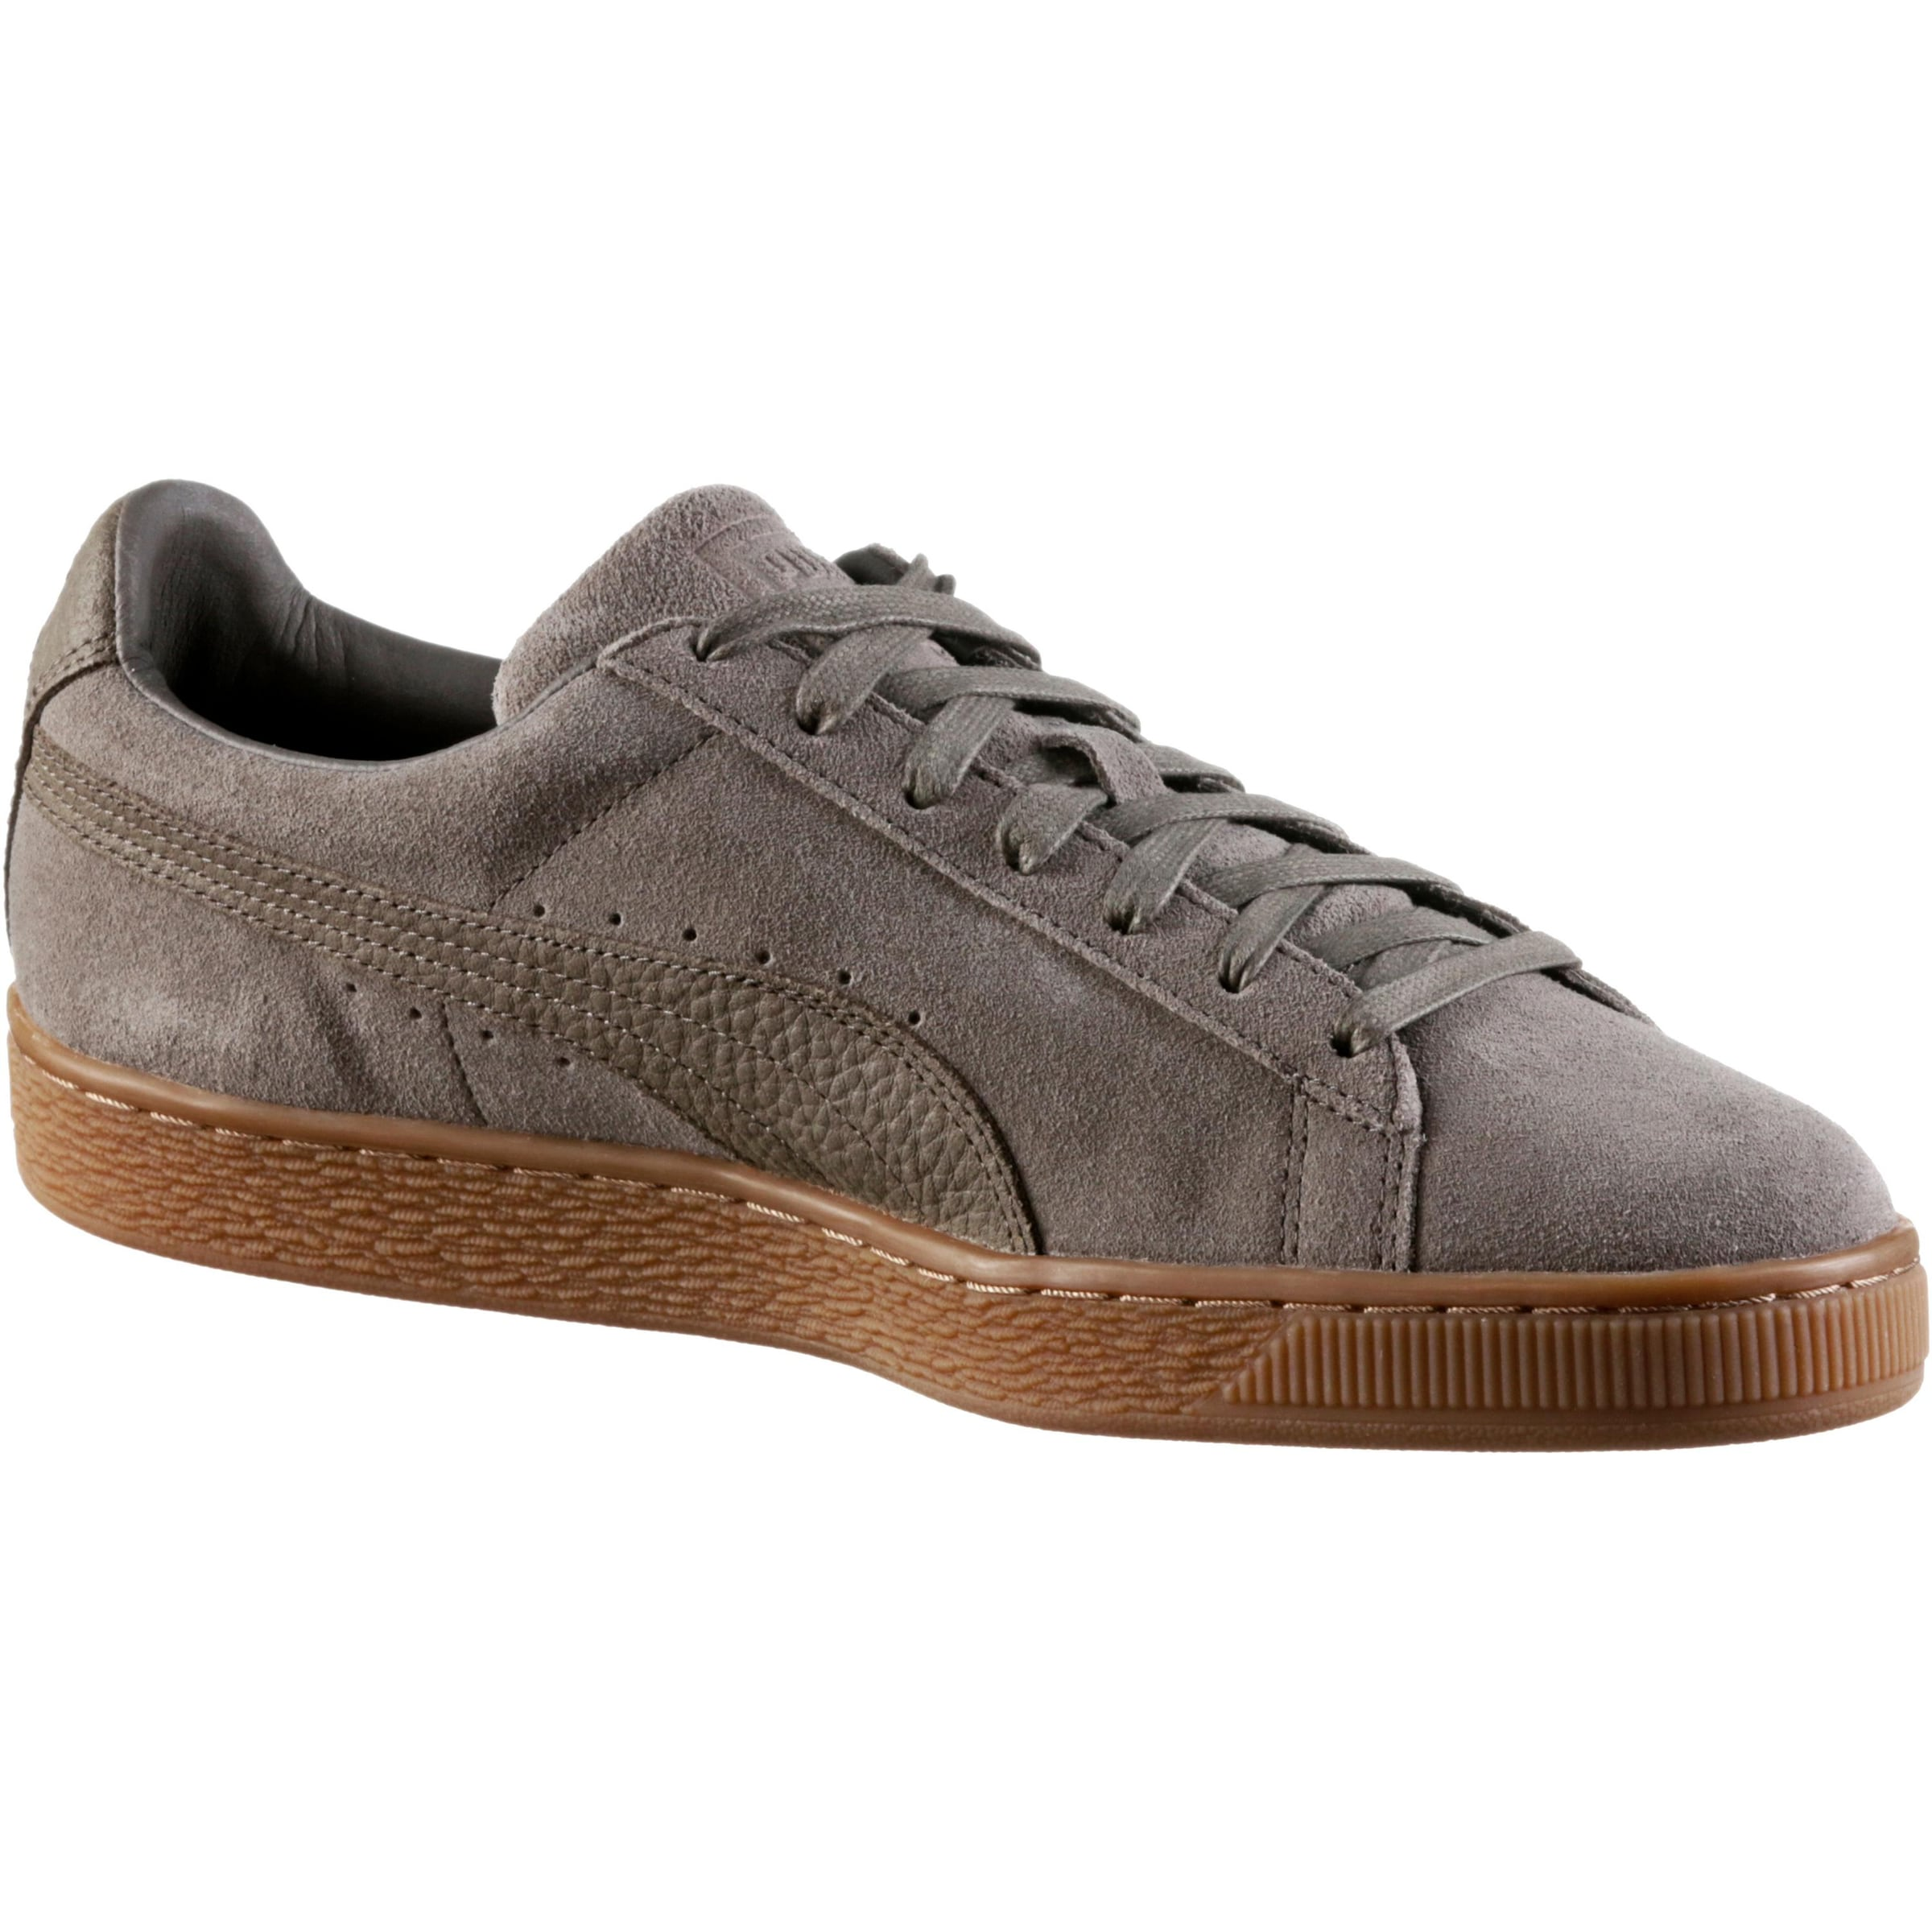 Natural Baskets Taupe Classic En Puma Basses 'suede Warmth' ZuPkXi